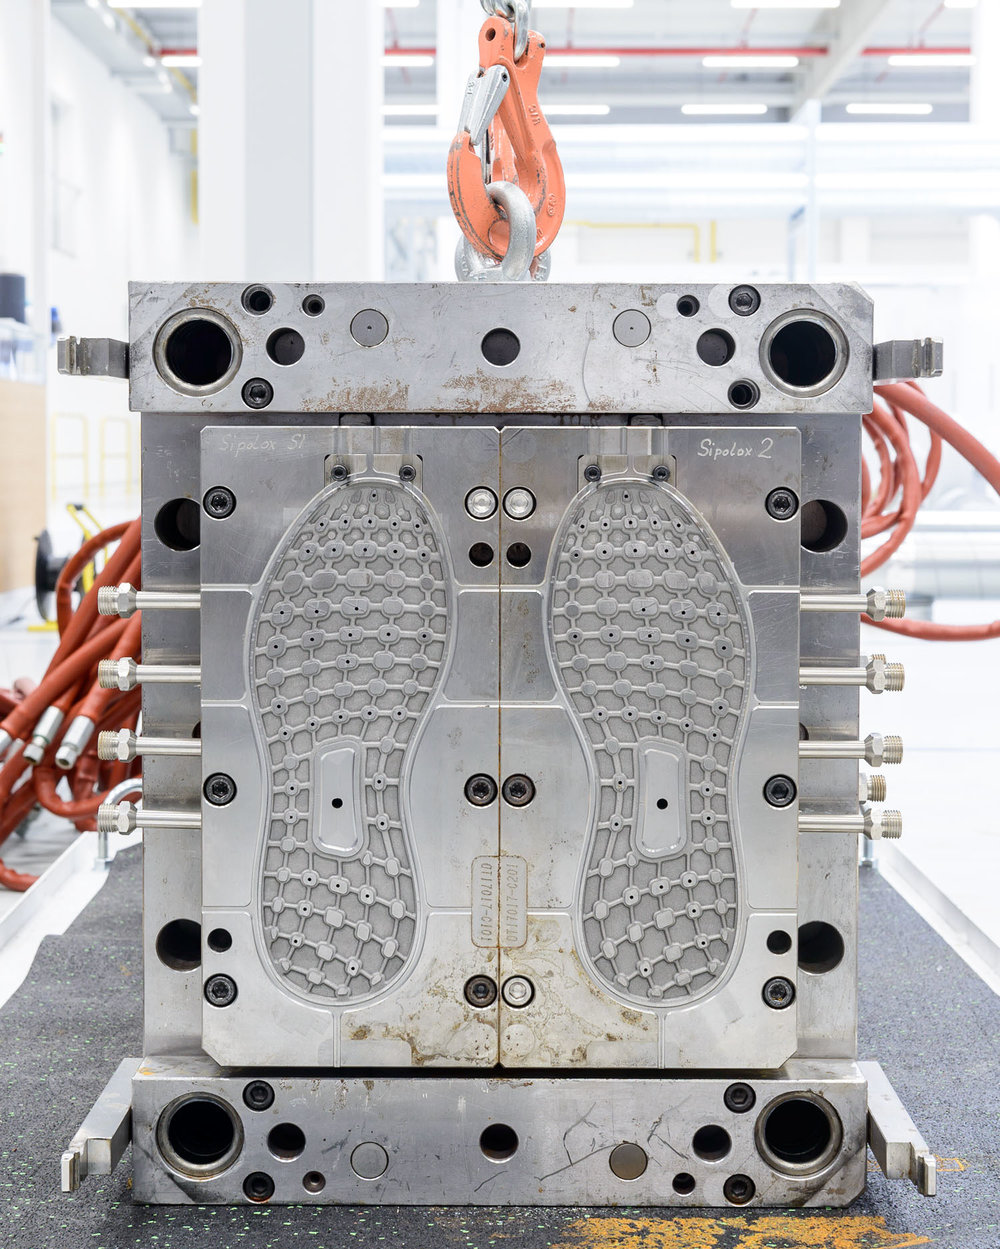 A metal mould for producing rubber outsoles at the adidas Speedfactory